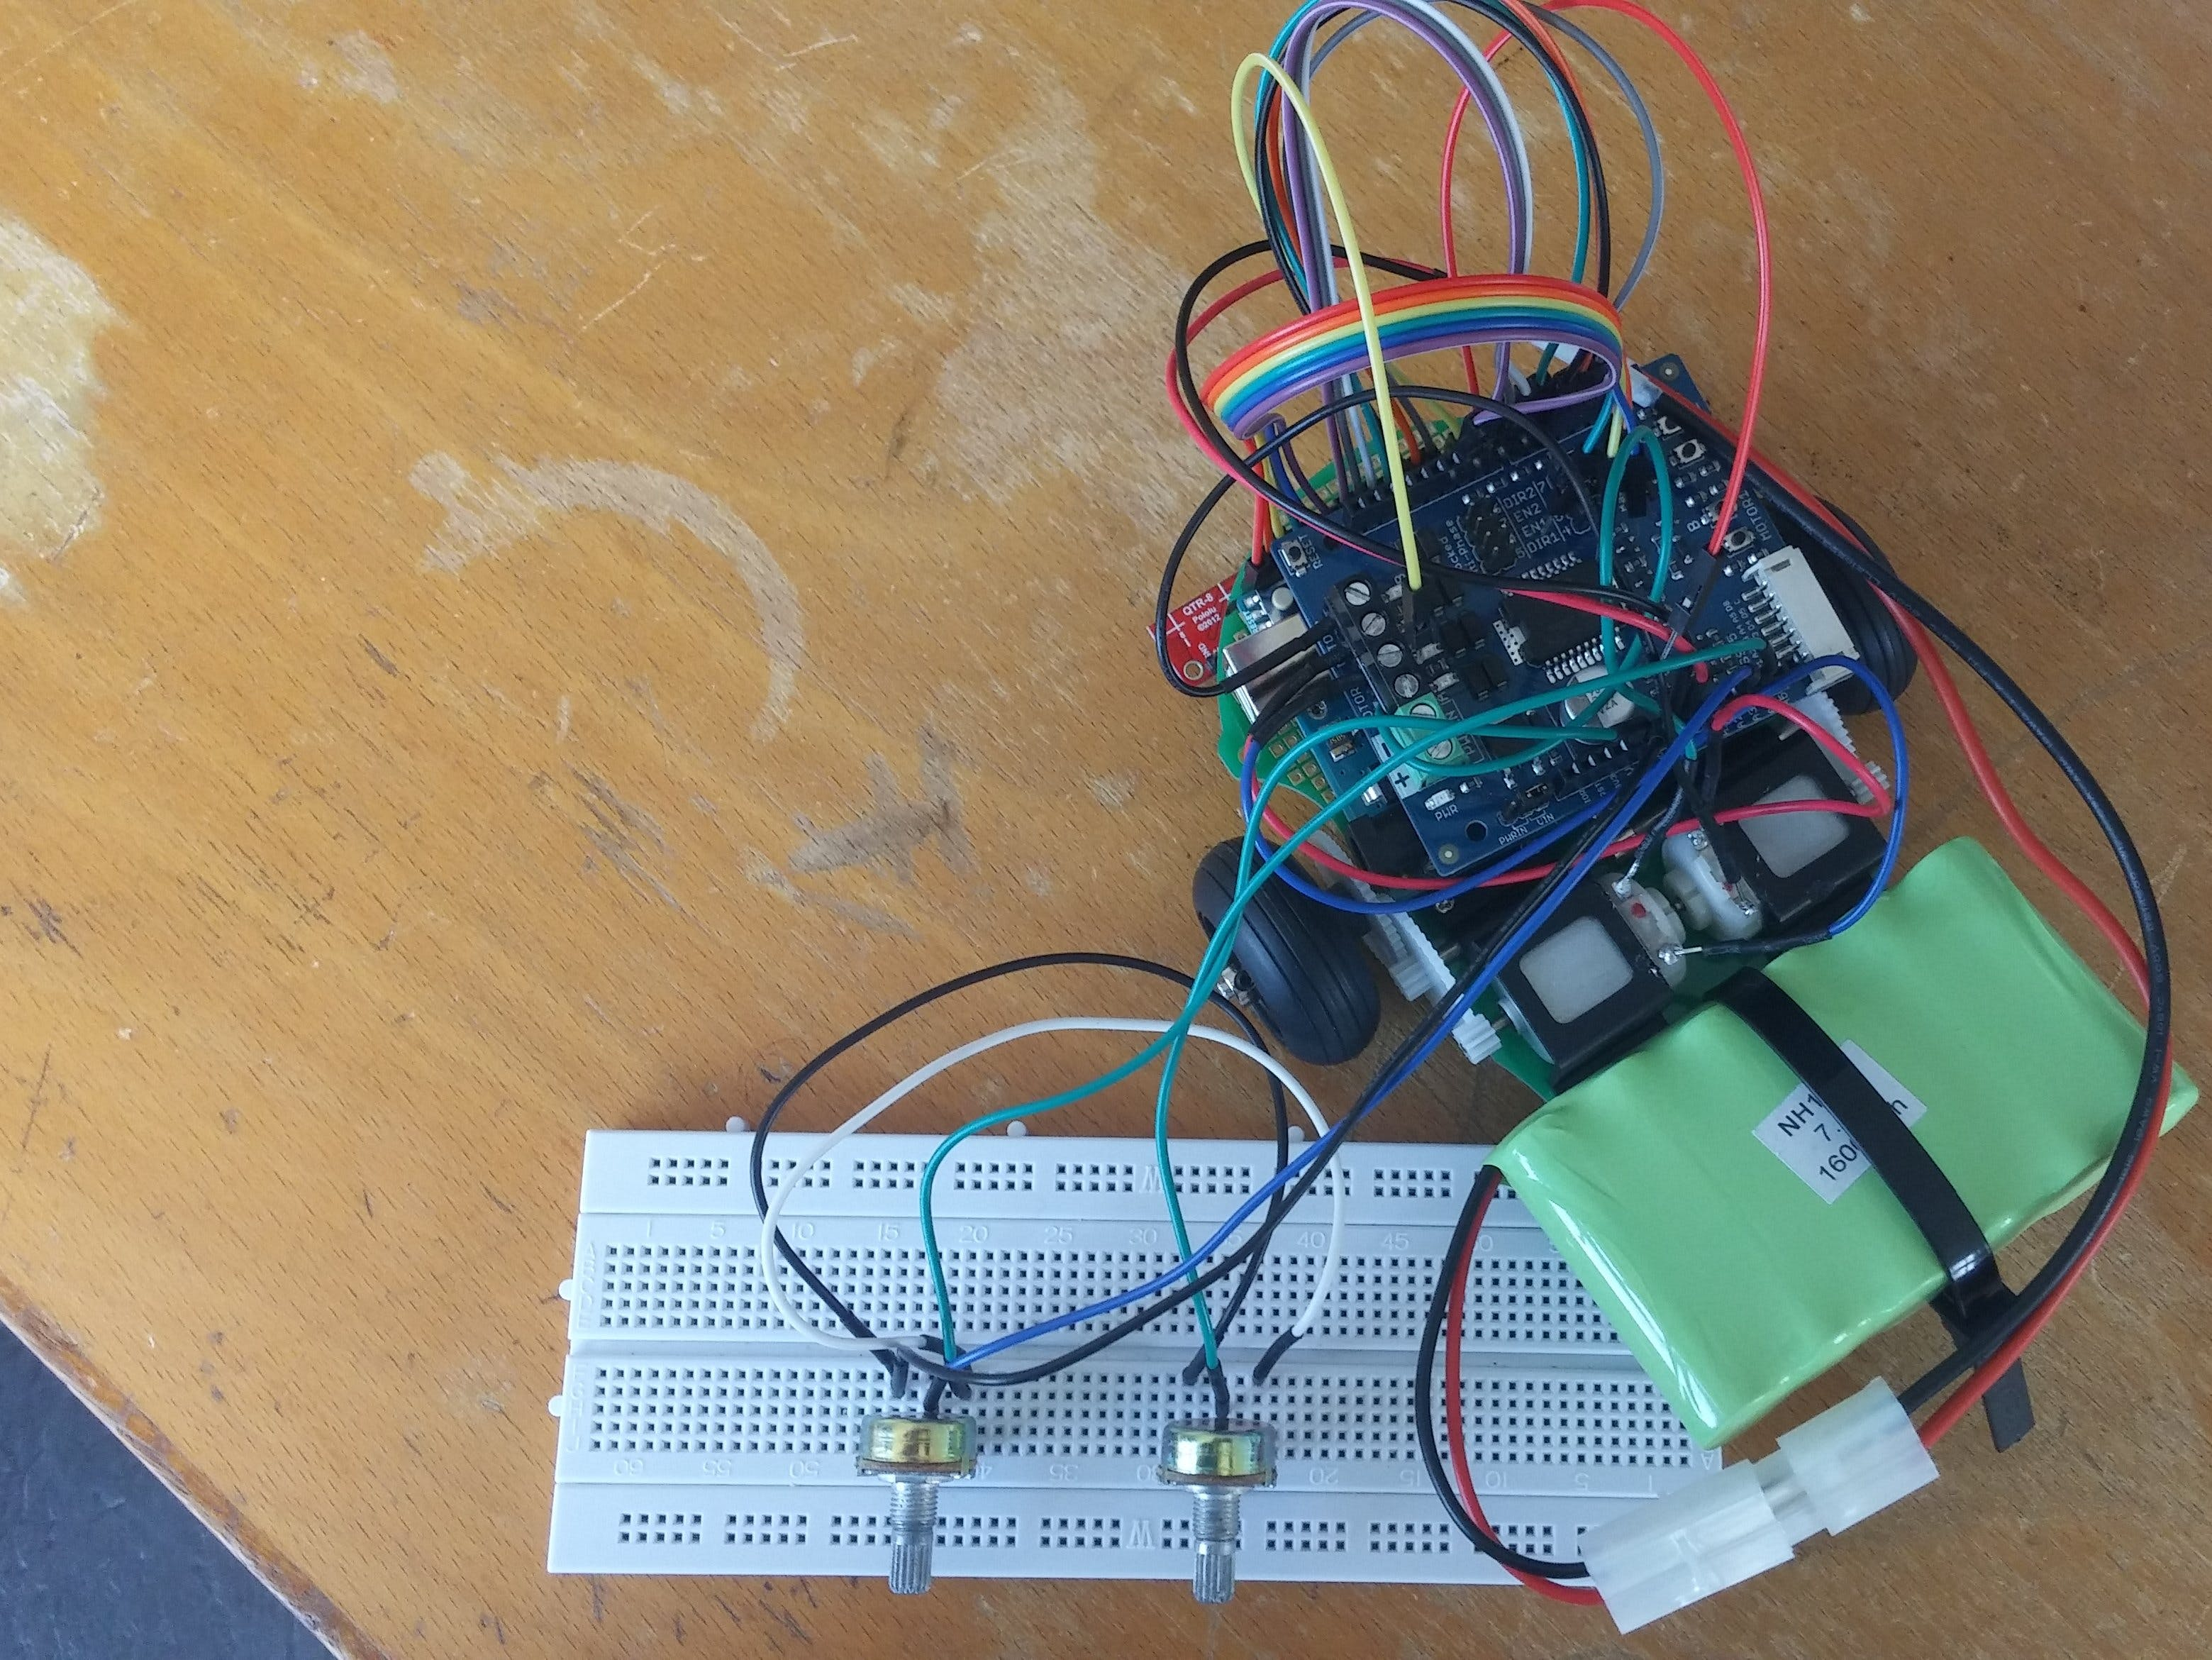 Controlling a low-cost robot with two potentiometers